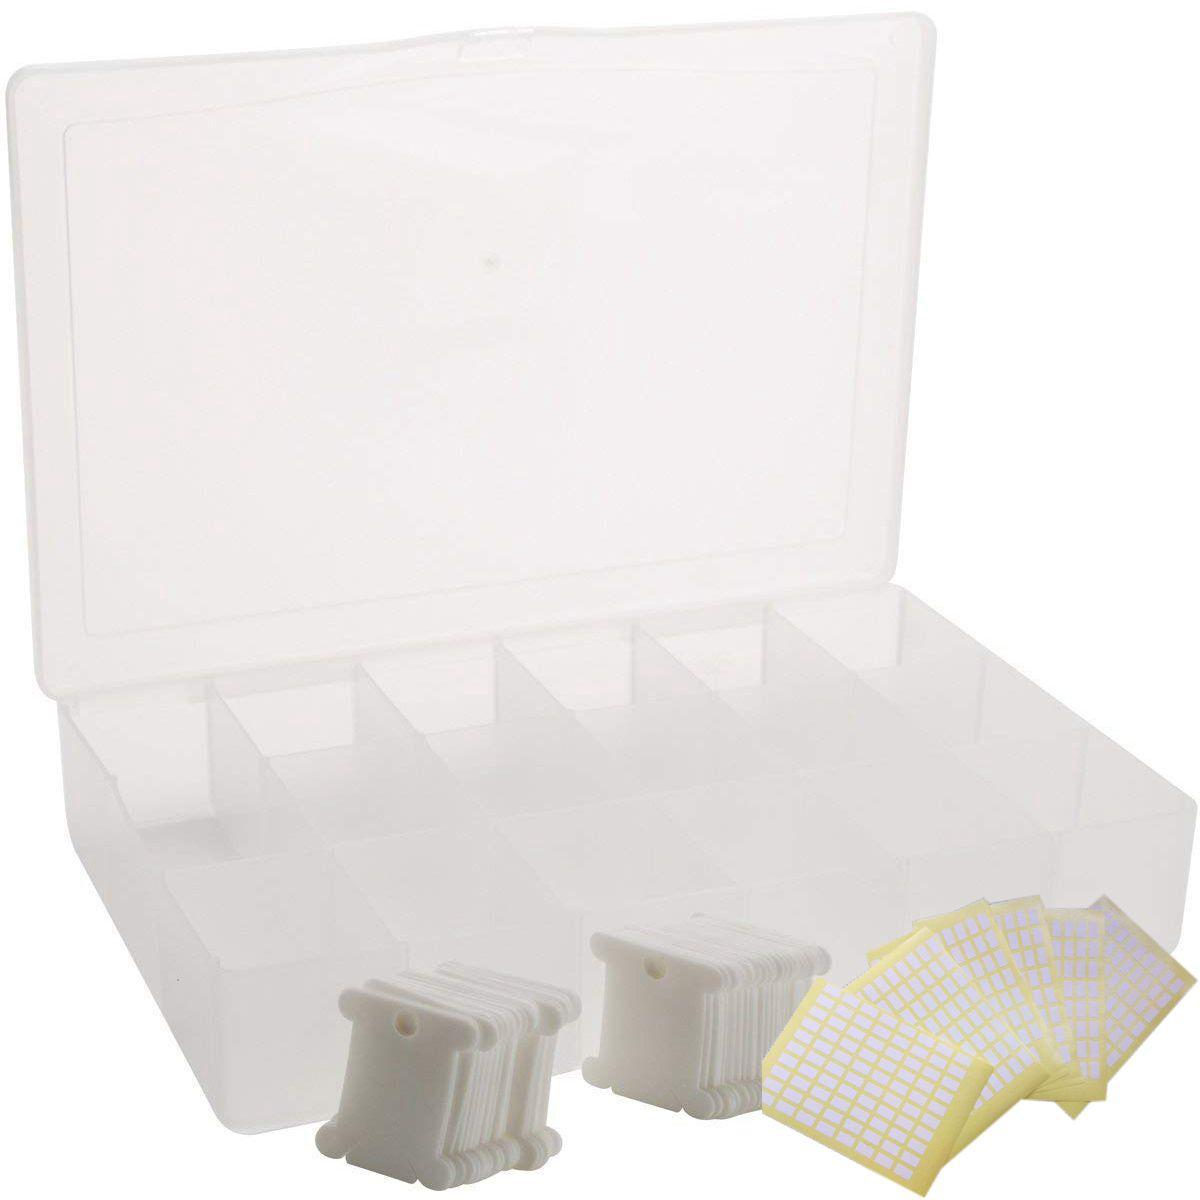 Embroidery Floss Organizer Box - 17 Compartments with 100 Hard Plastic Floss Bobbins and 480 Floss Number Stickers. Full Set